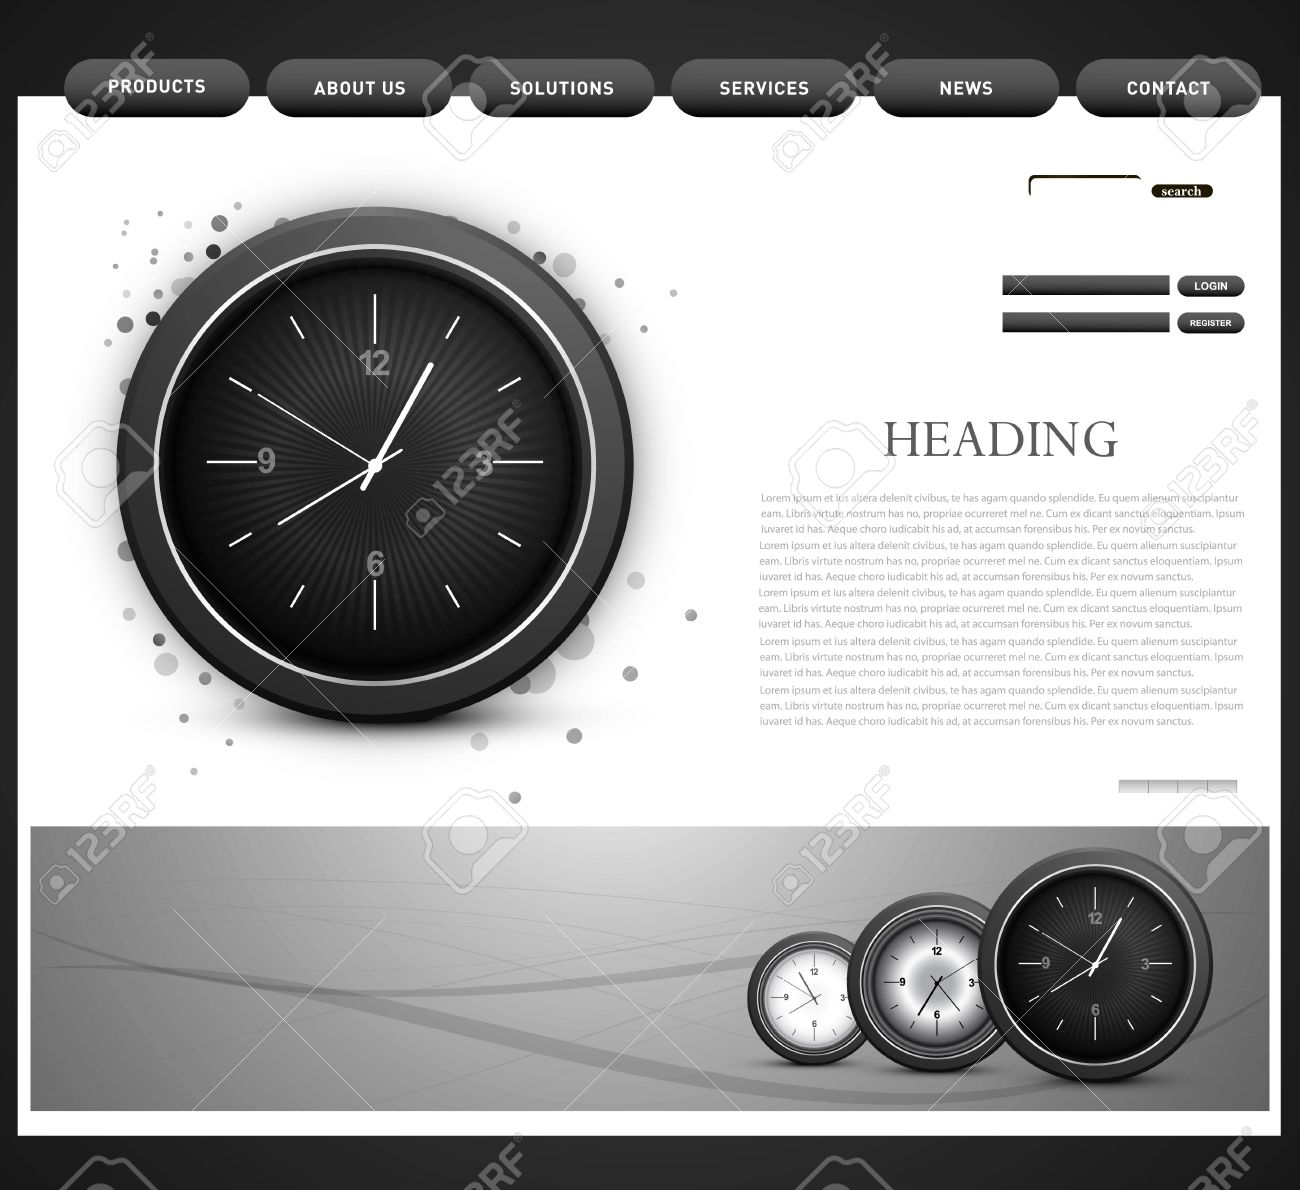 Website Template Presentation Watch Design Royalty Free Cliparts Vectors And Stock Illustration Image 20858807